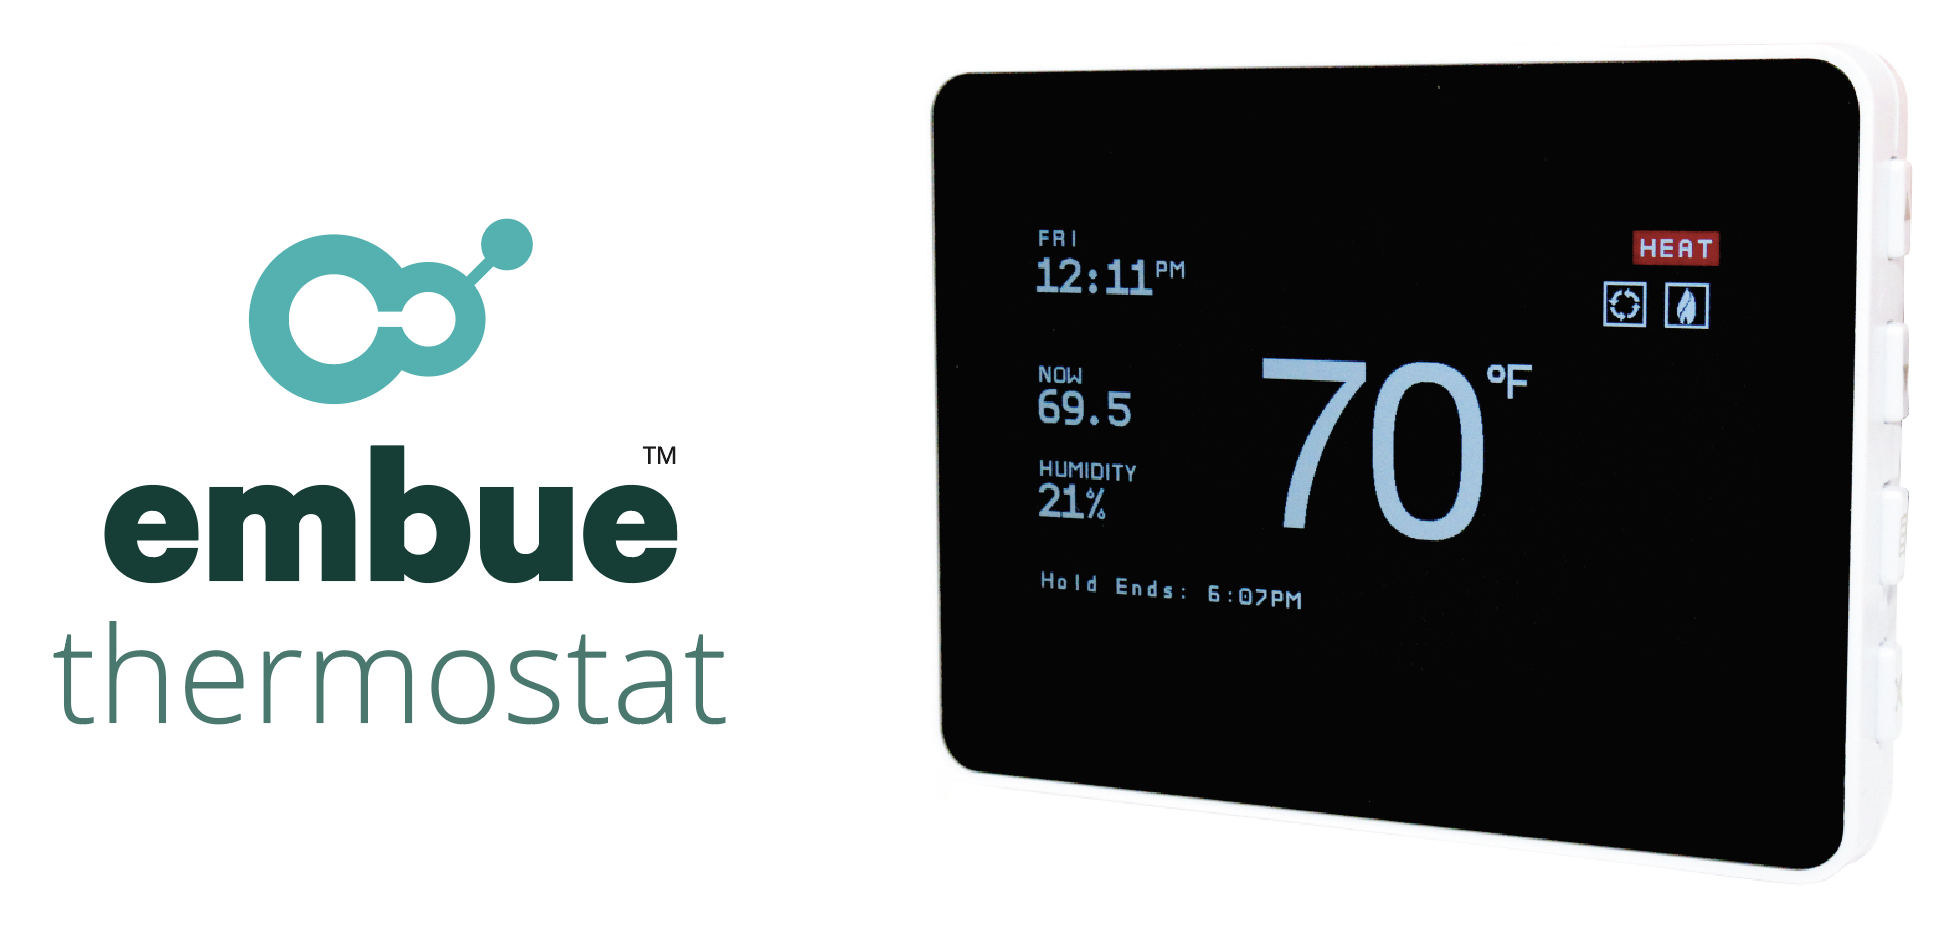 Embue Thermostat